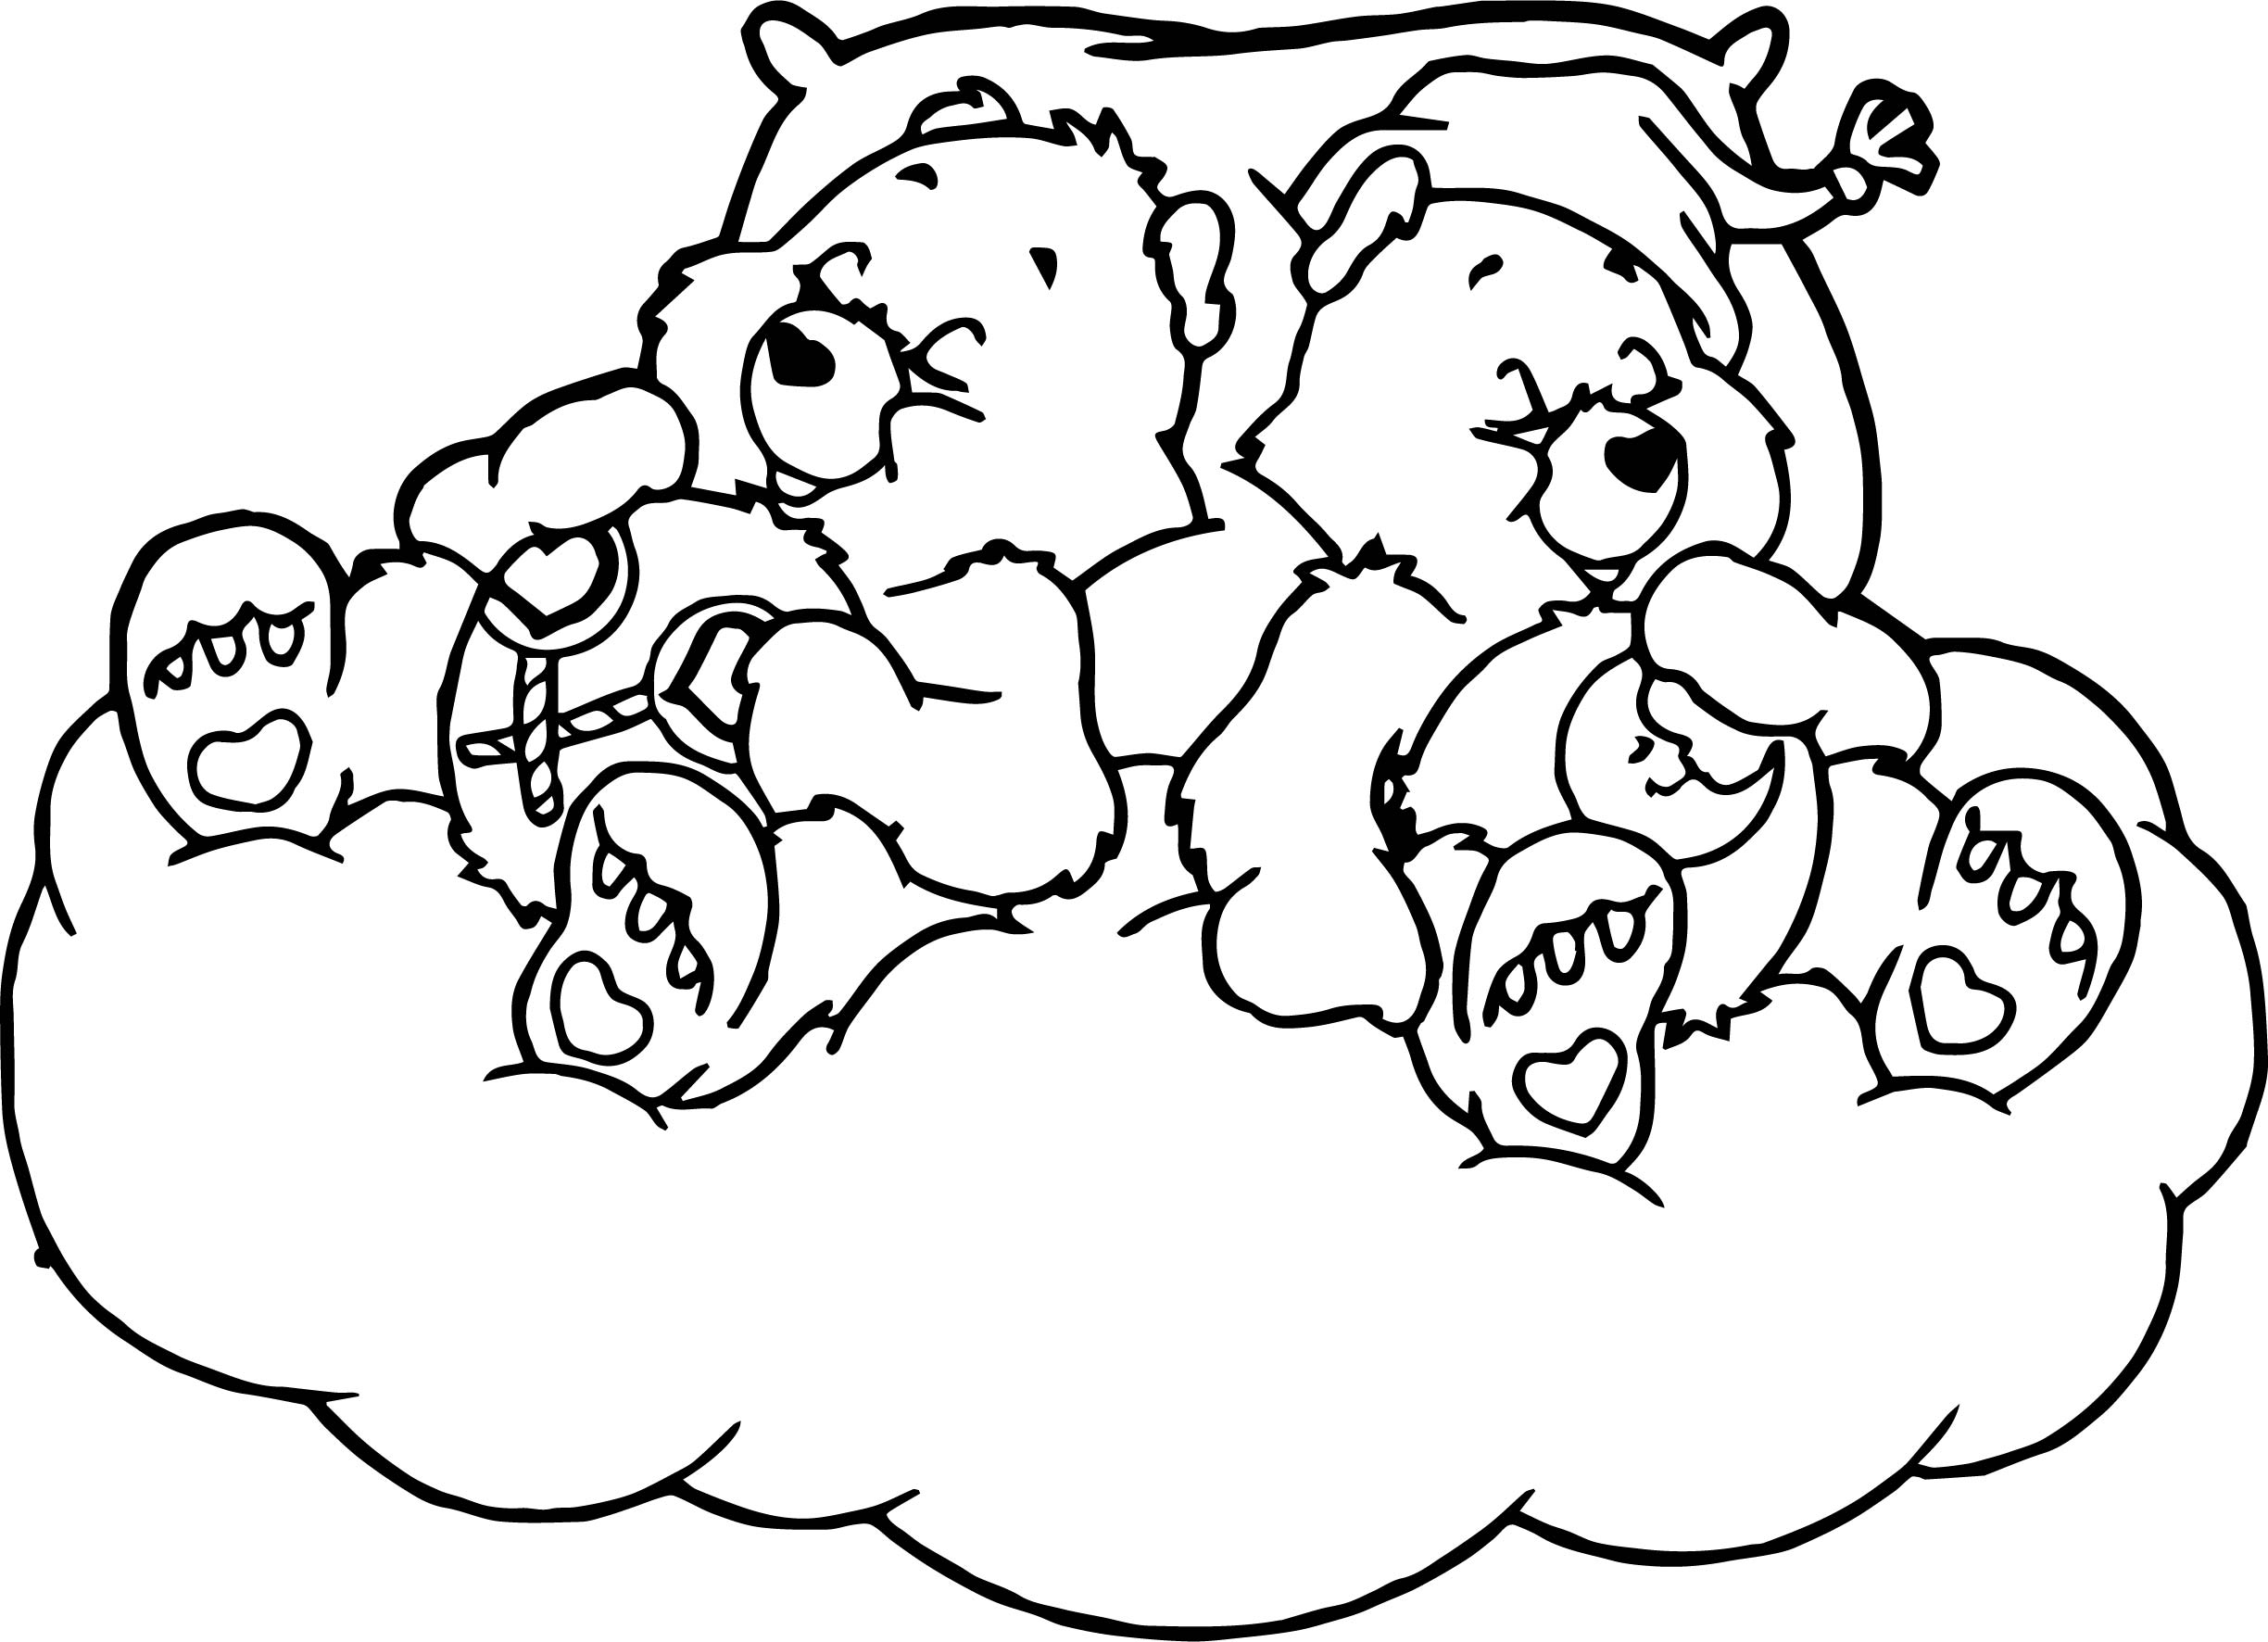 Sleeping Chipmunk Coloring Pages Gt Gt Hasshe